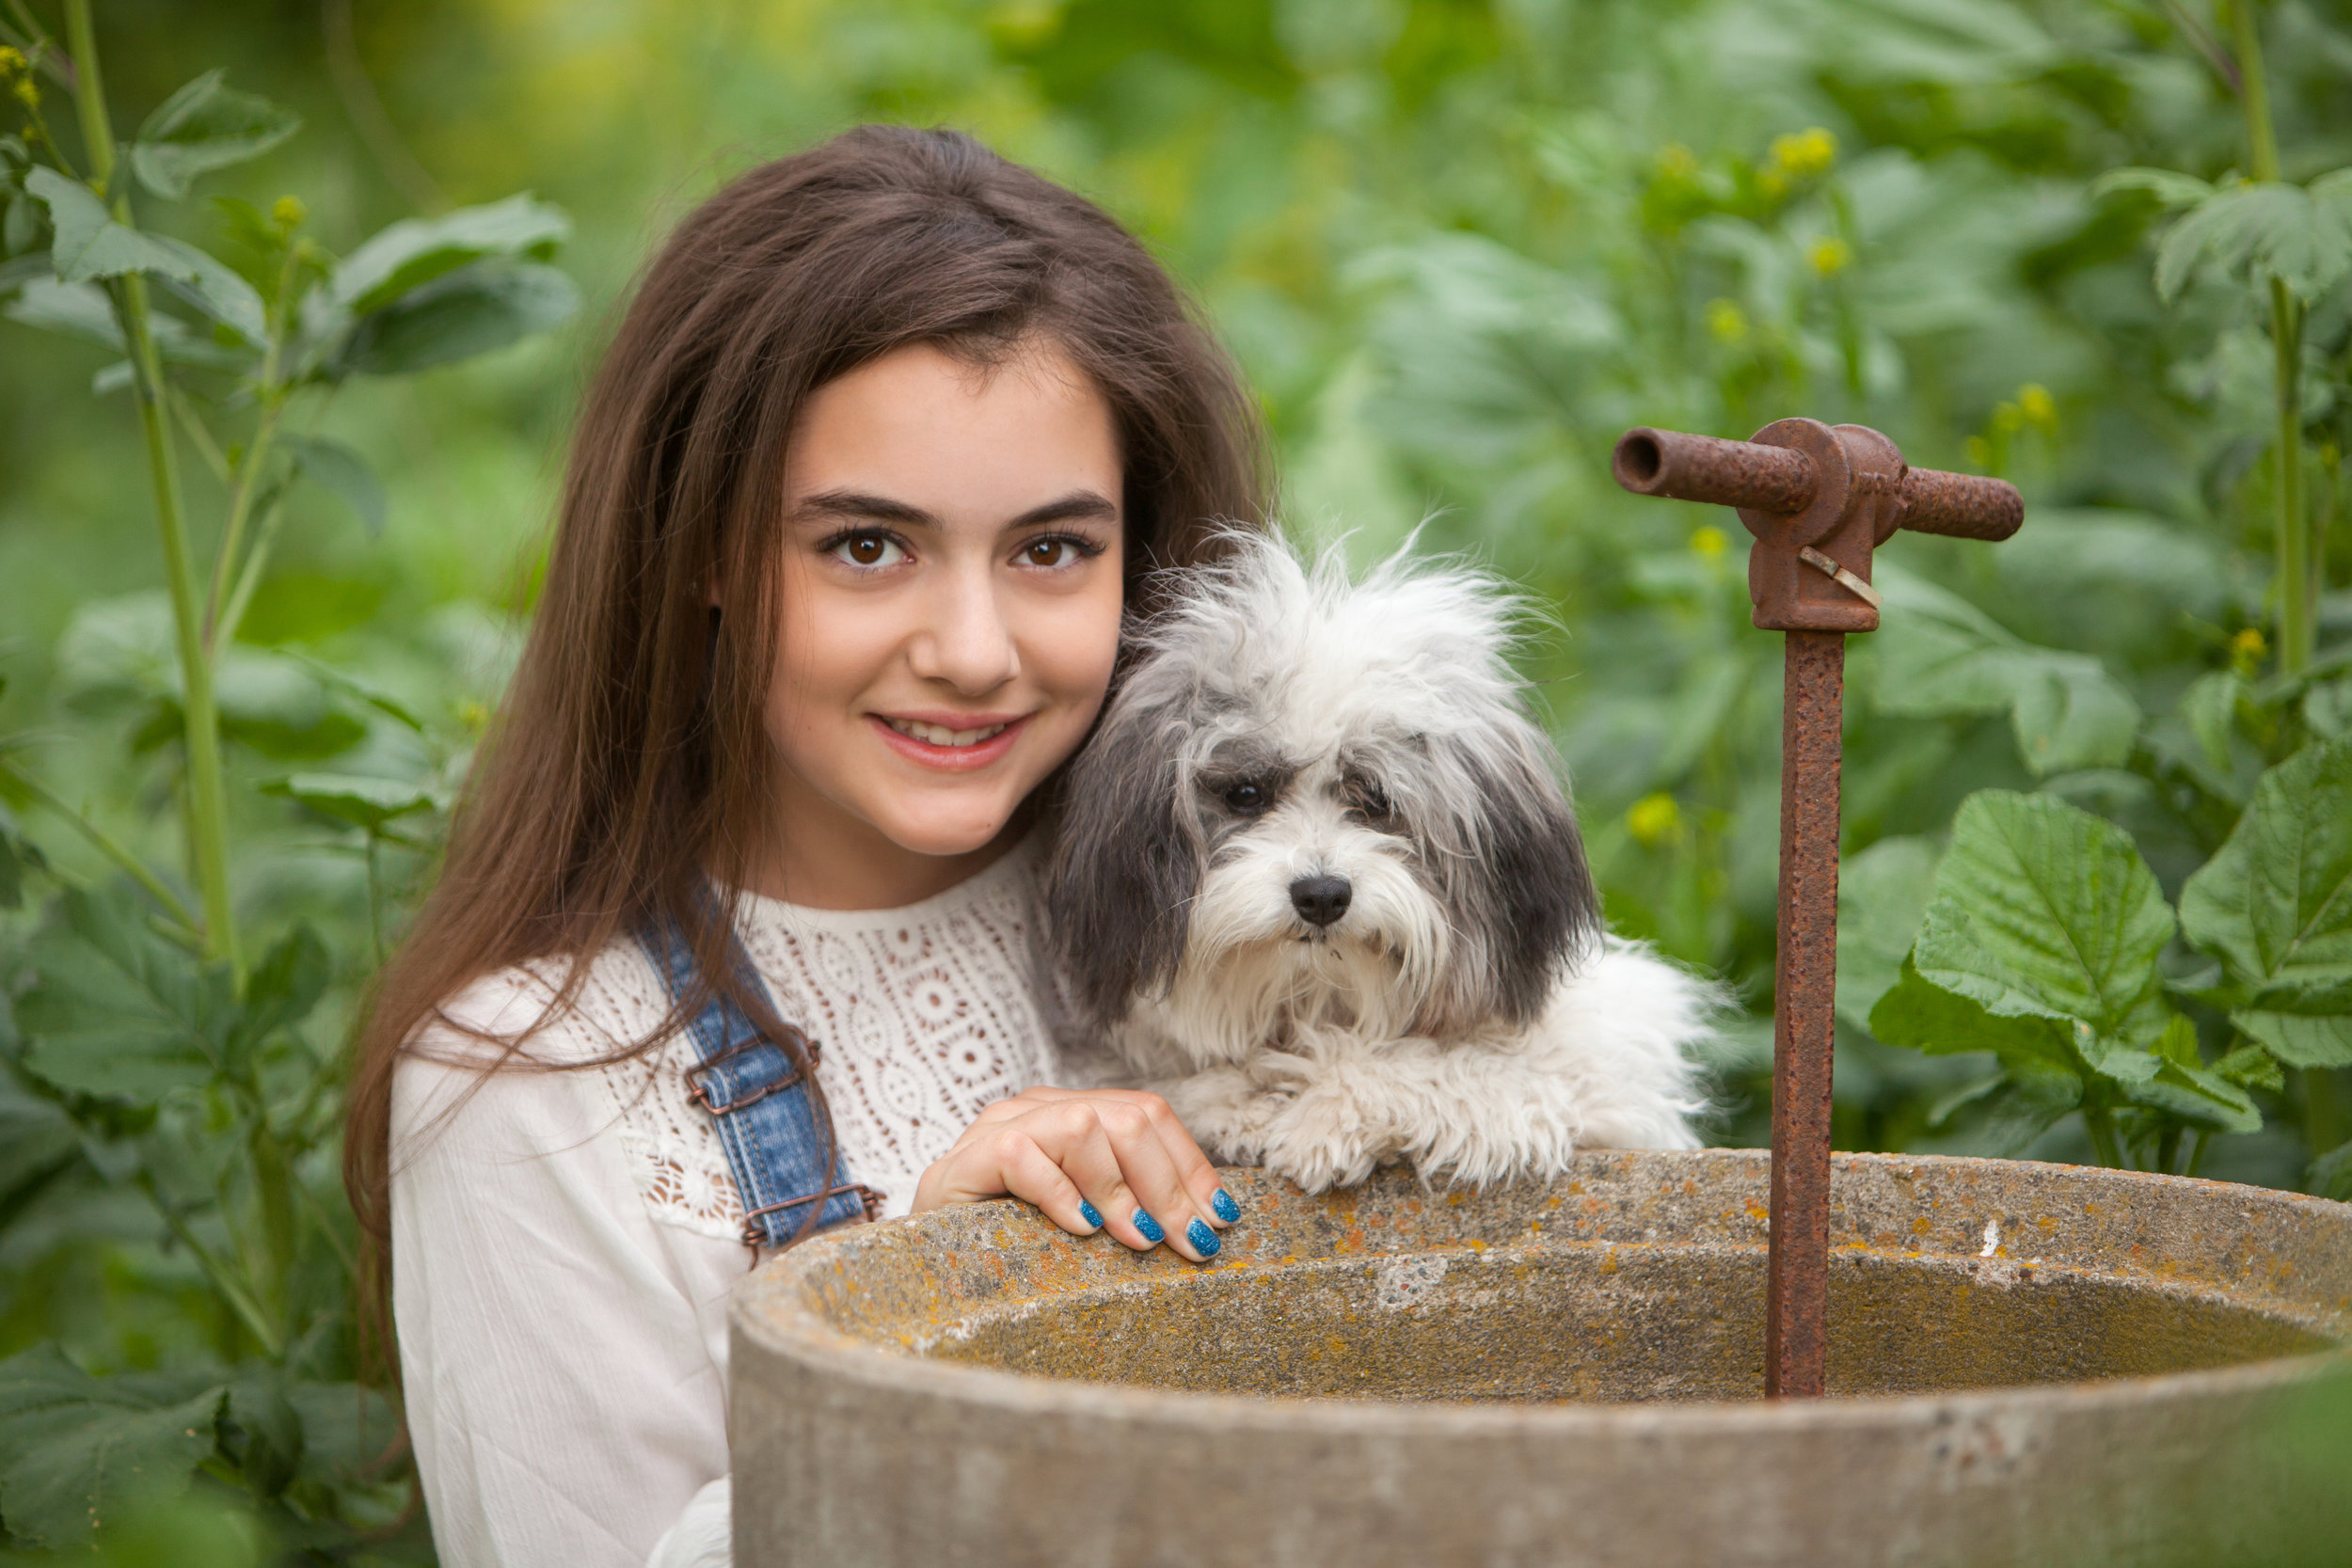 Pretty girl with long brown hair with her dog